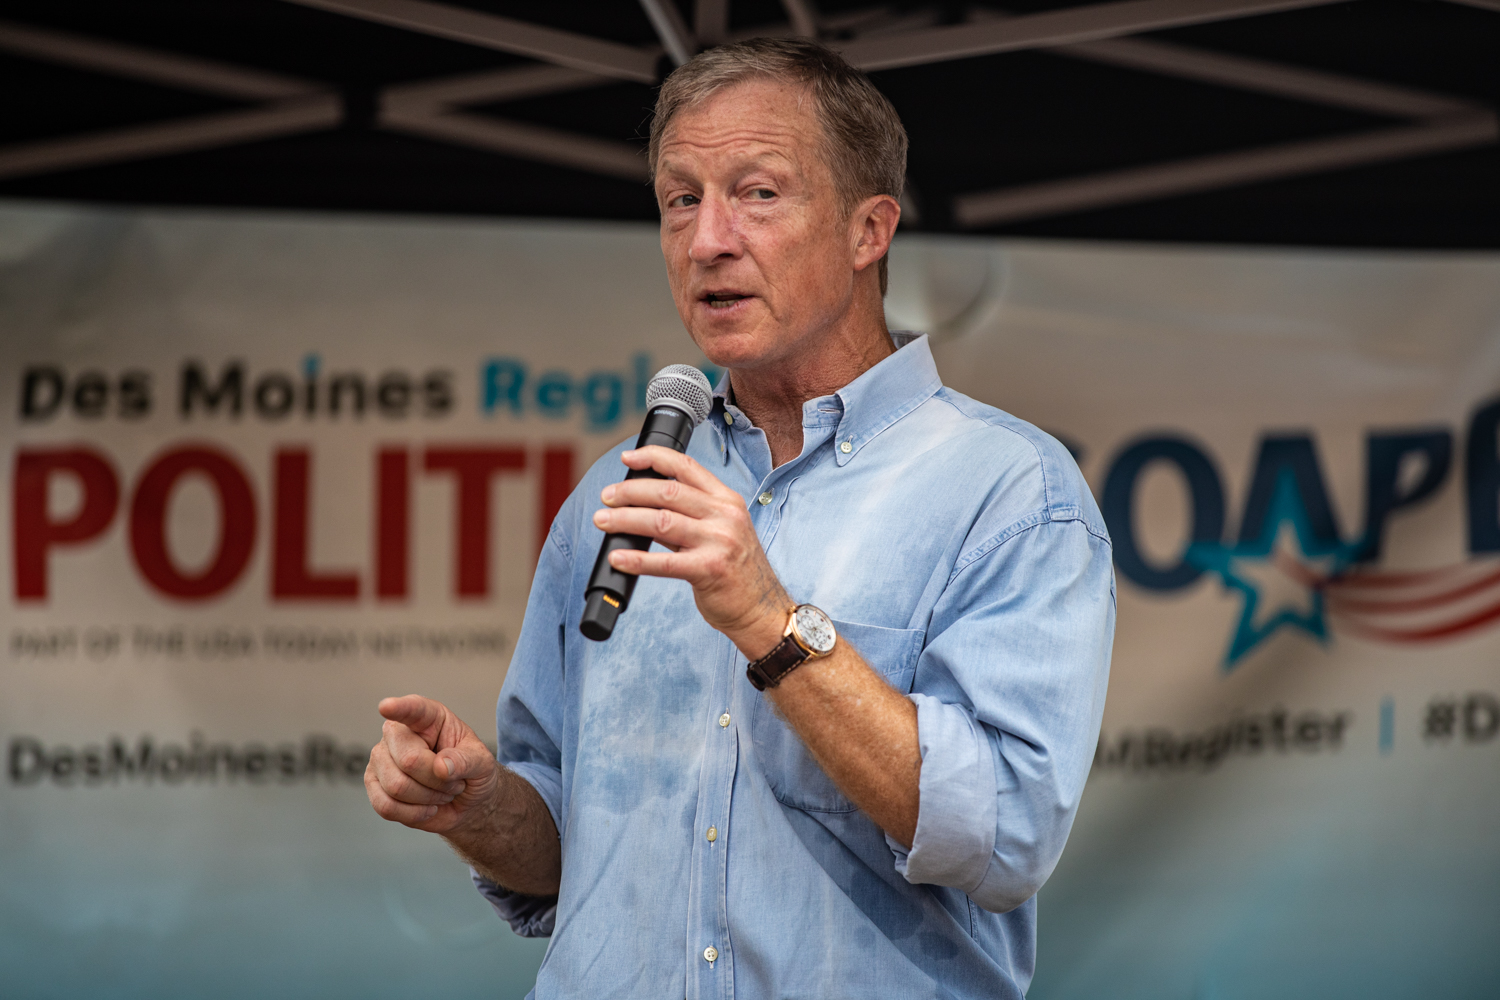 Tom Steyer speaks at the Des Moines Register Political Soapbox during the Iowa State Fair in Des Moines, IA on Sunday, August 11, 2019. (Shivansh Ahuja/The Daily Iowan)